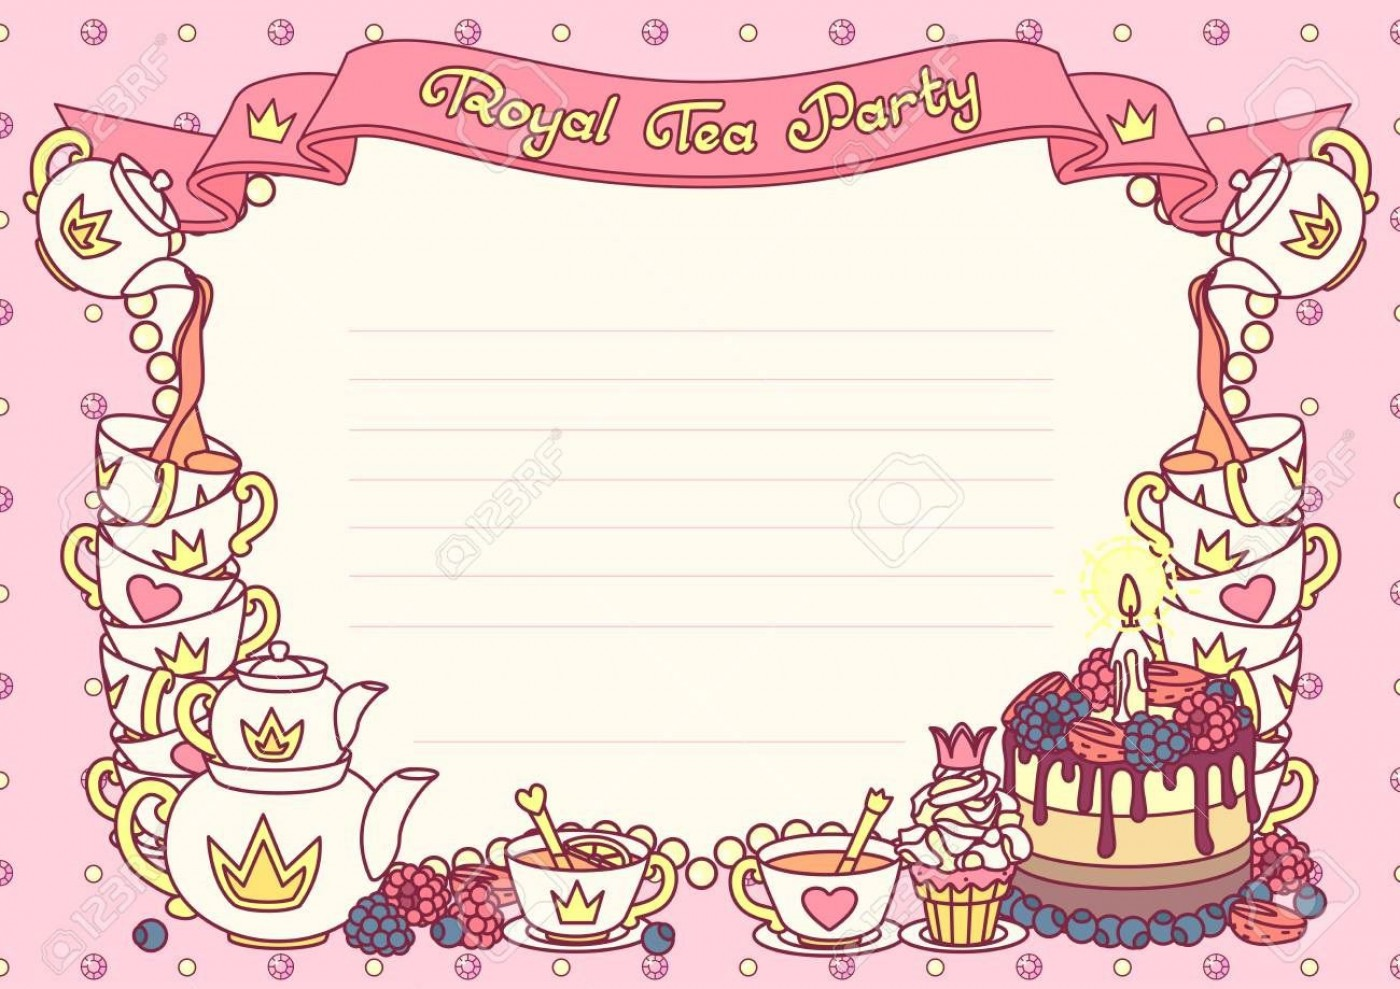 005 Rare Tea Party Invitation Template Image  Wording Vintage Free Sample1400